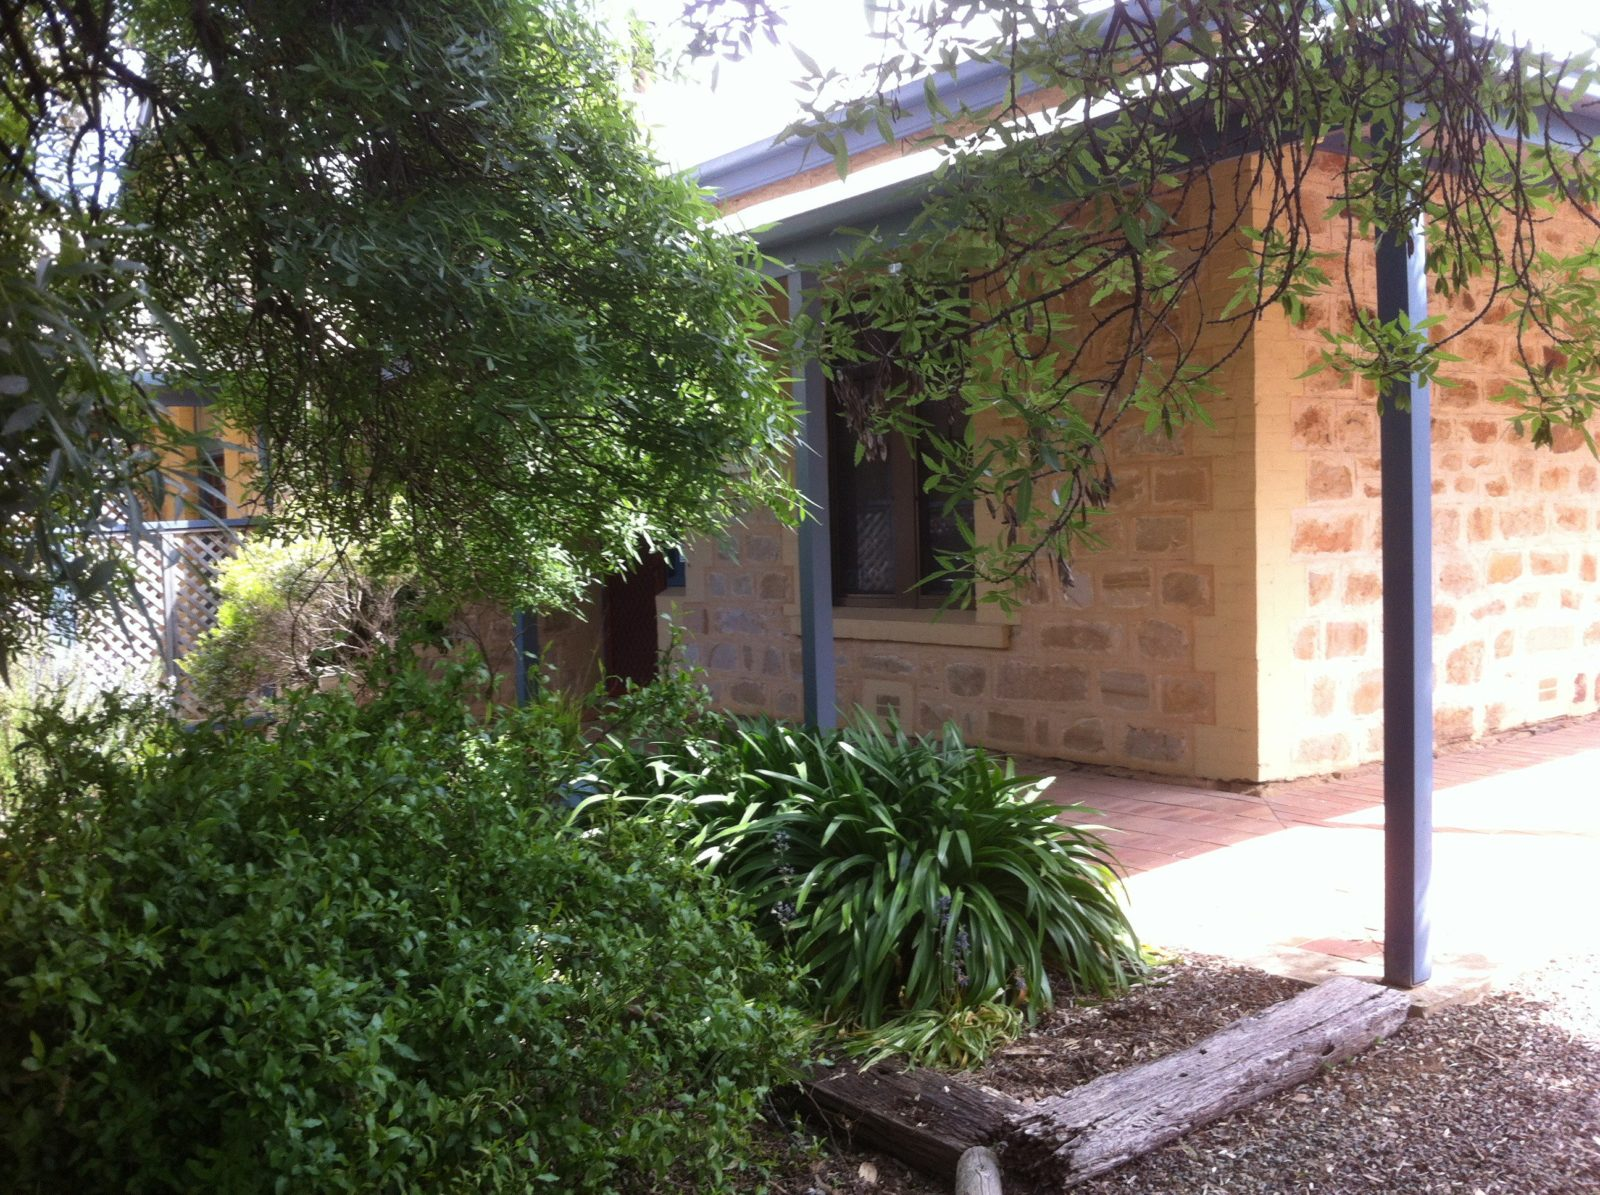 Granmas Cottages nicely sheltered by trees to keep cool in summer.